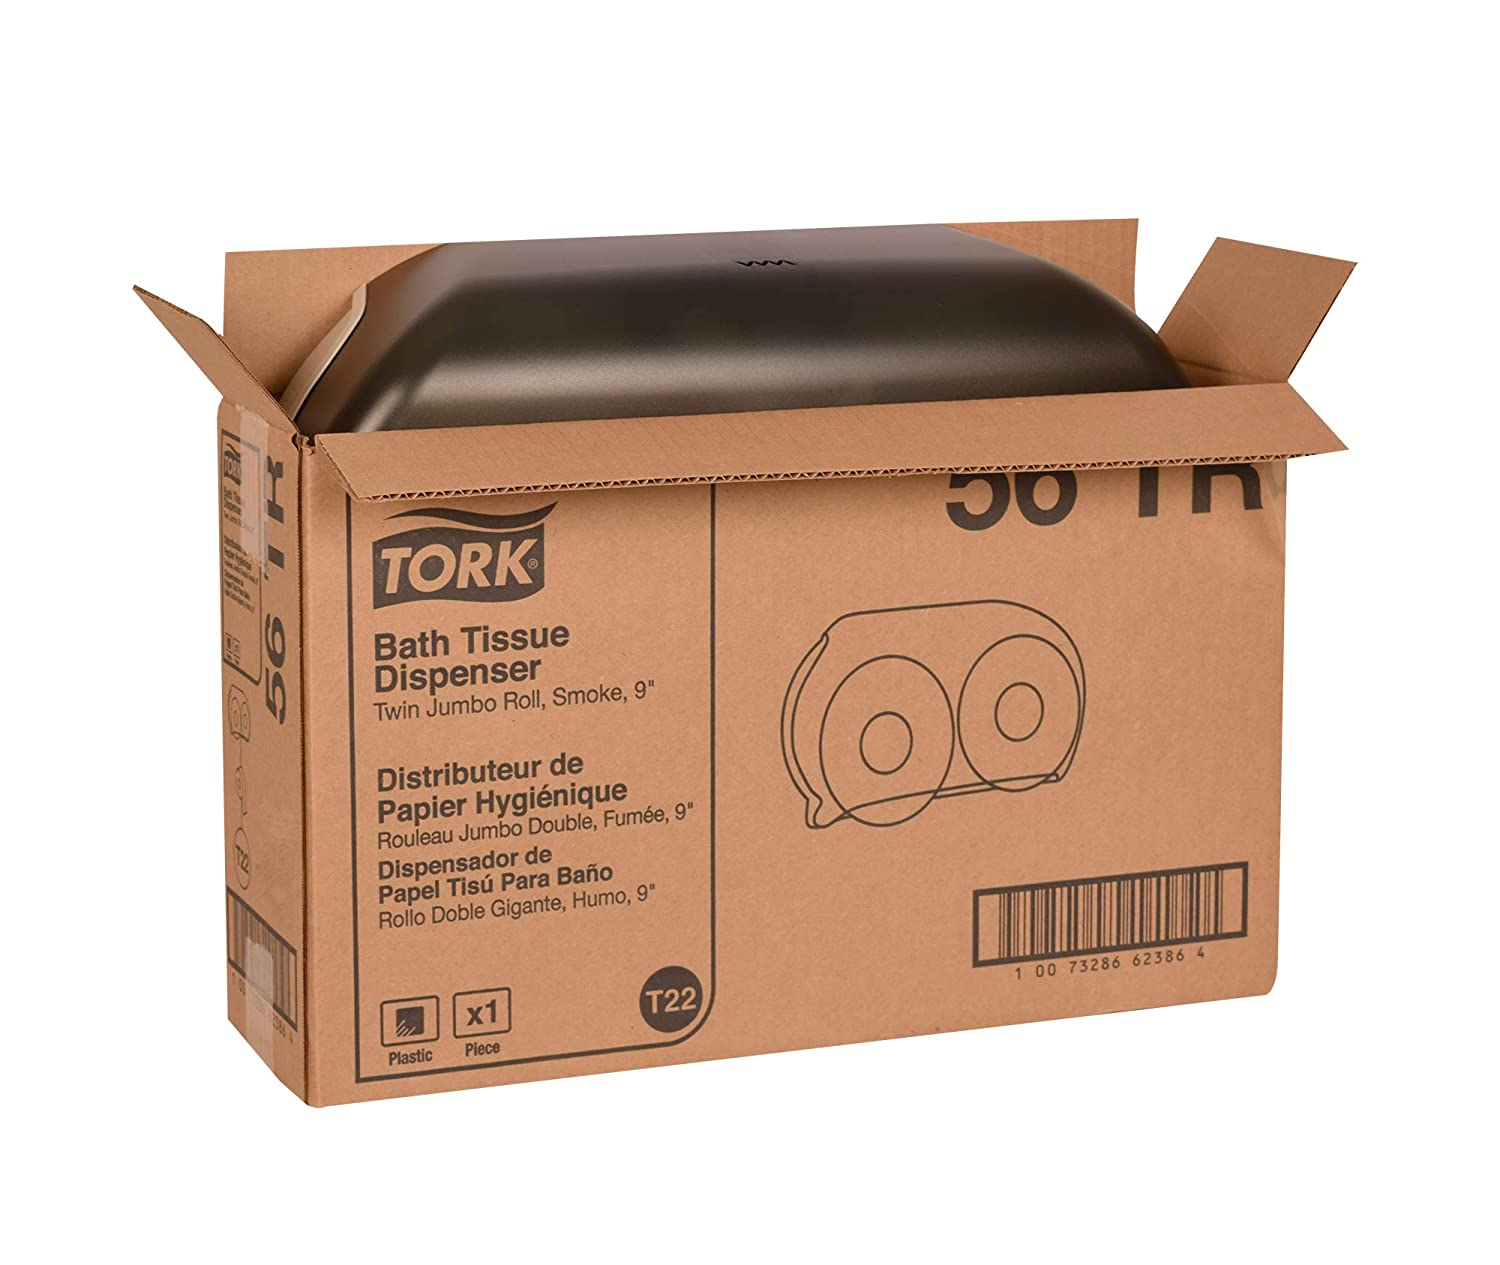 Amazon.com: Tork 56TR Twin Jumbo Bath Tissue Roll Dispenser, 9